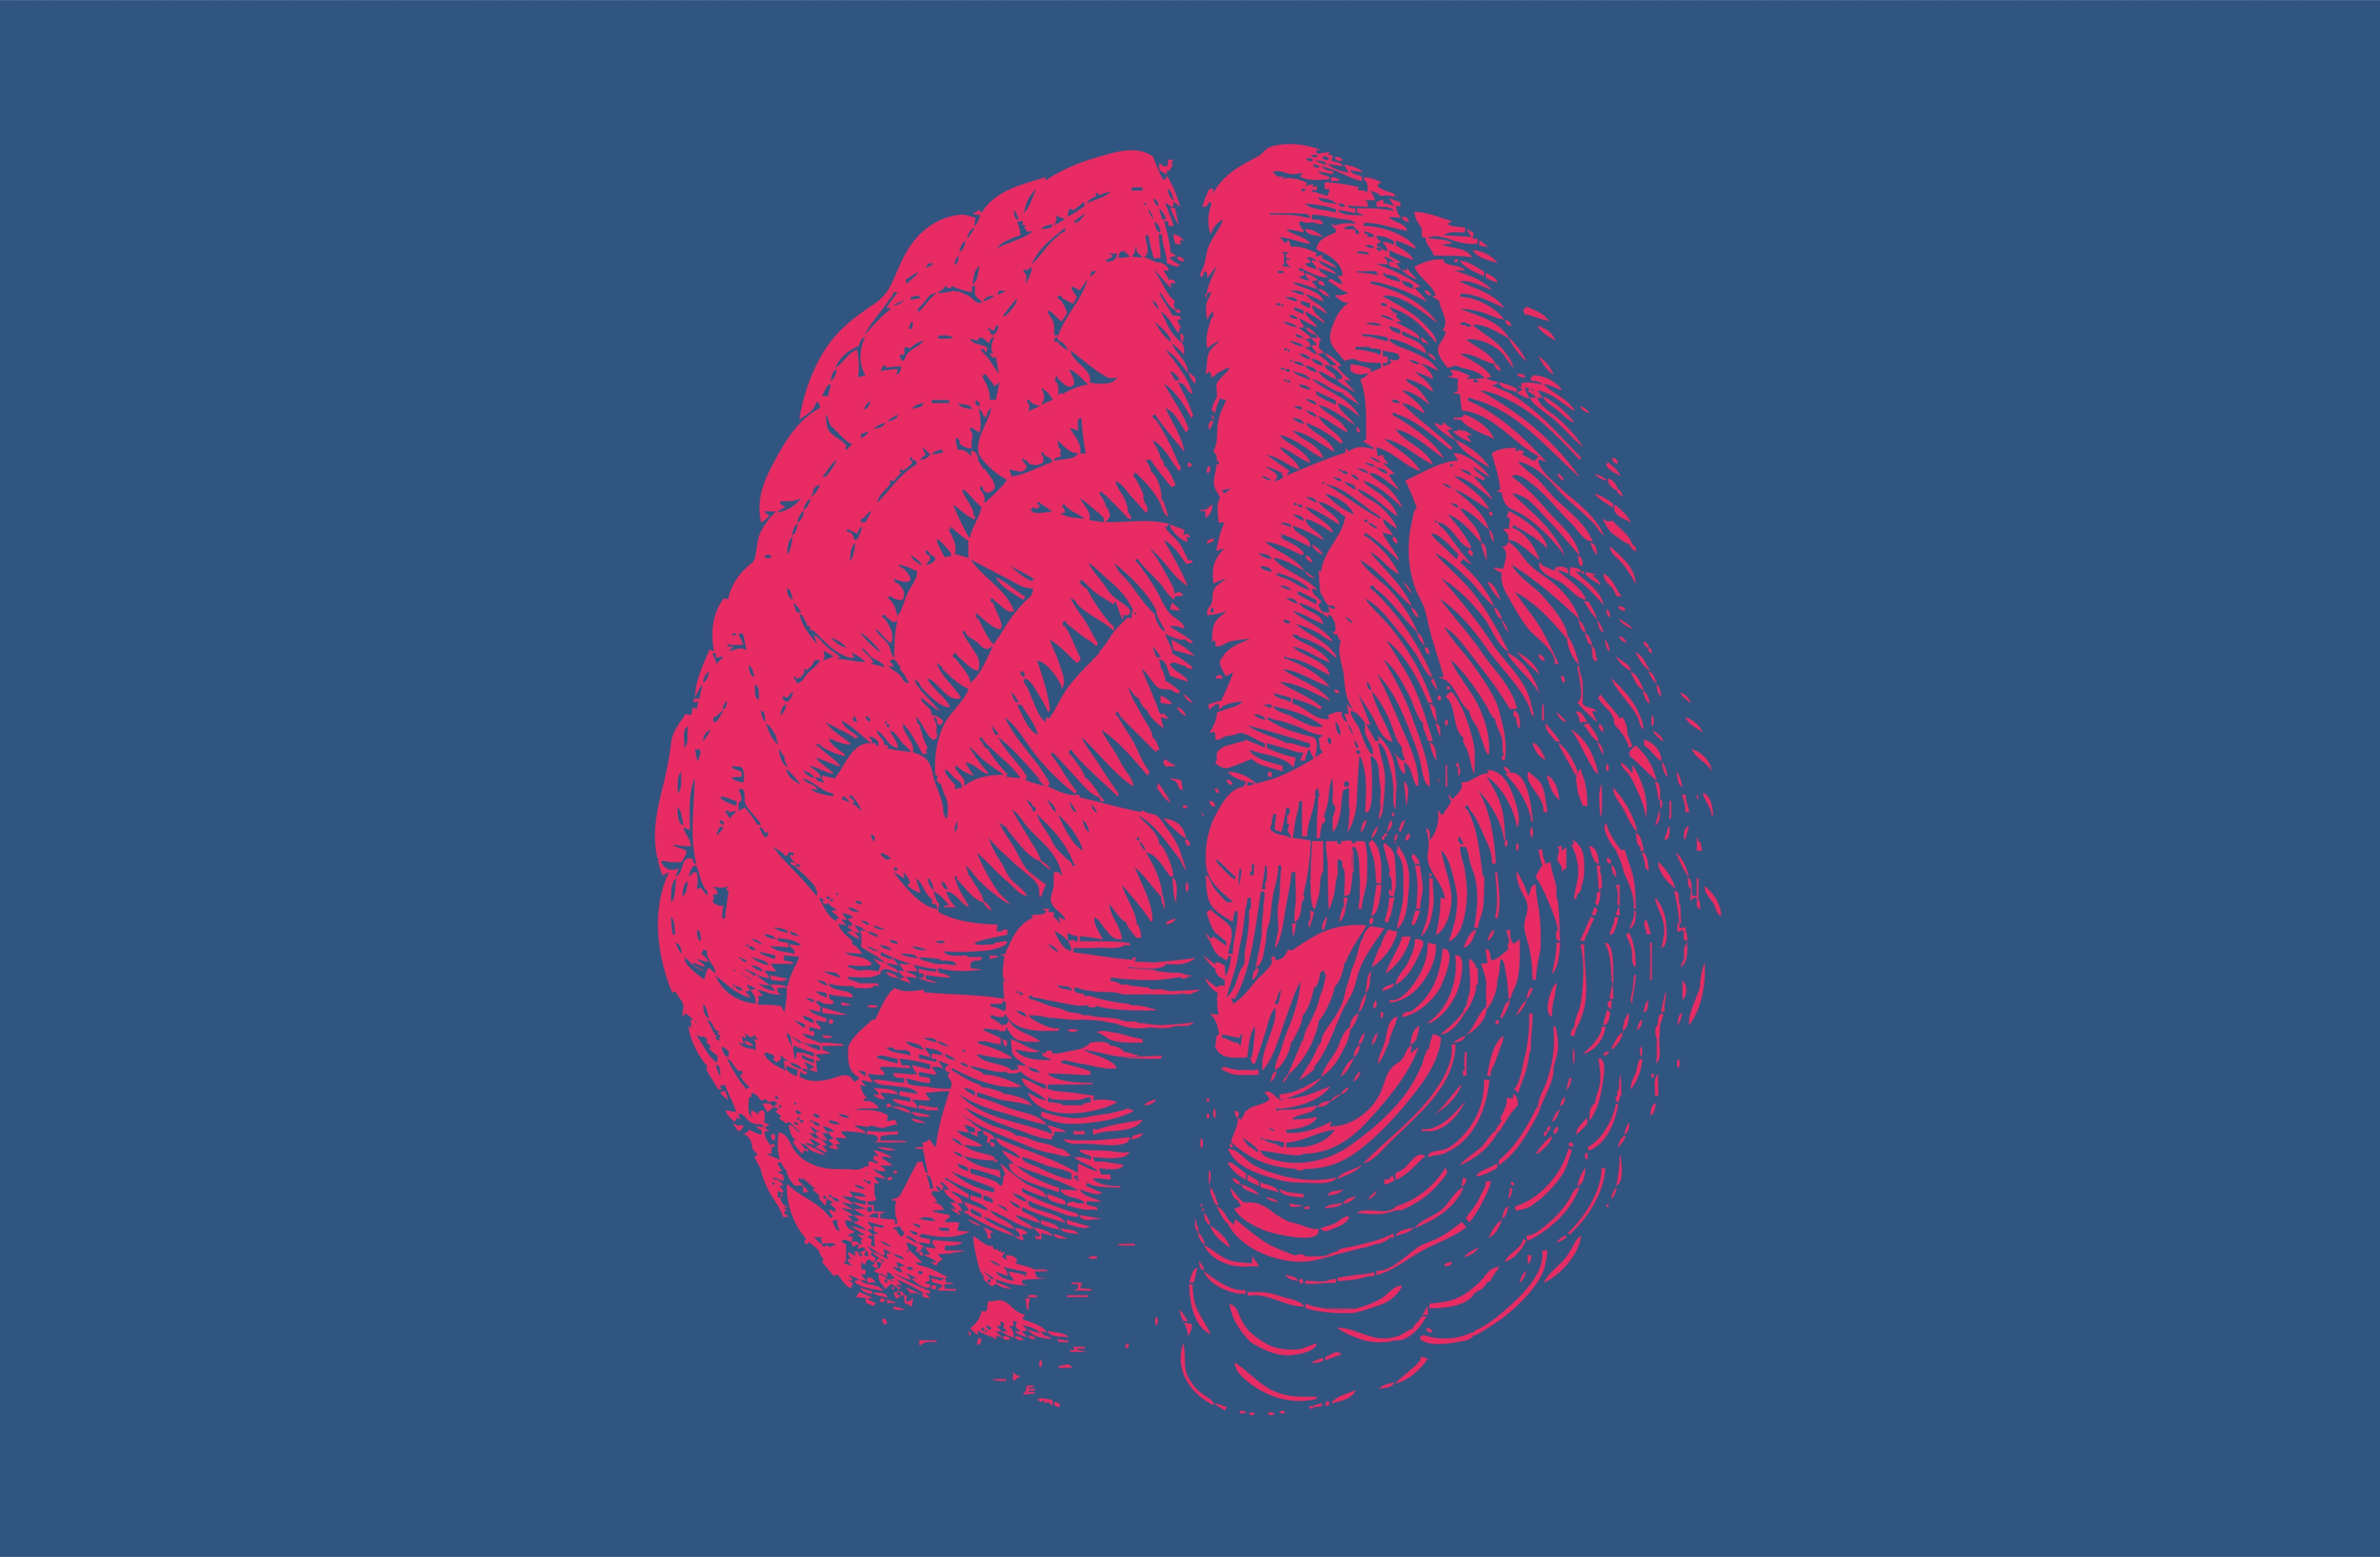 red brain on blue background